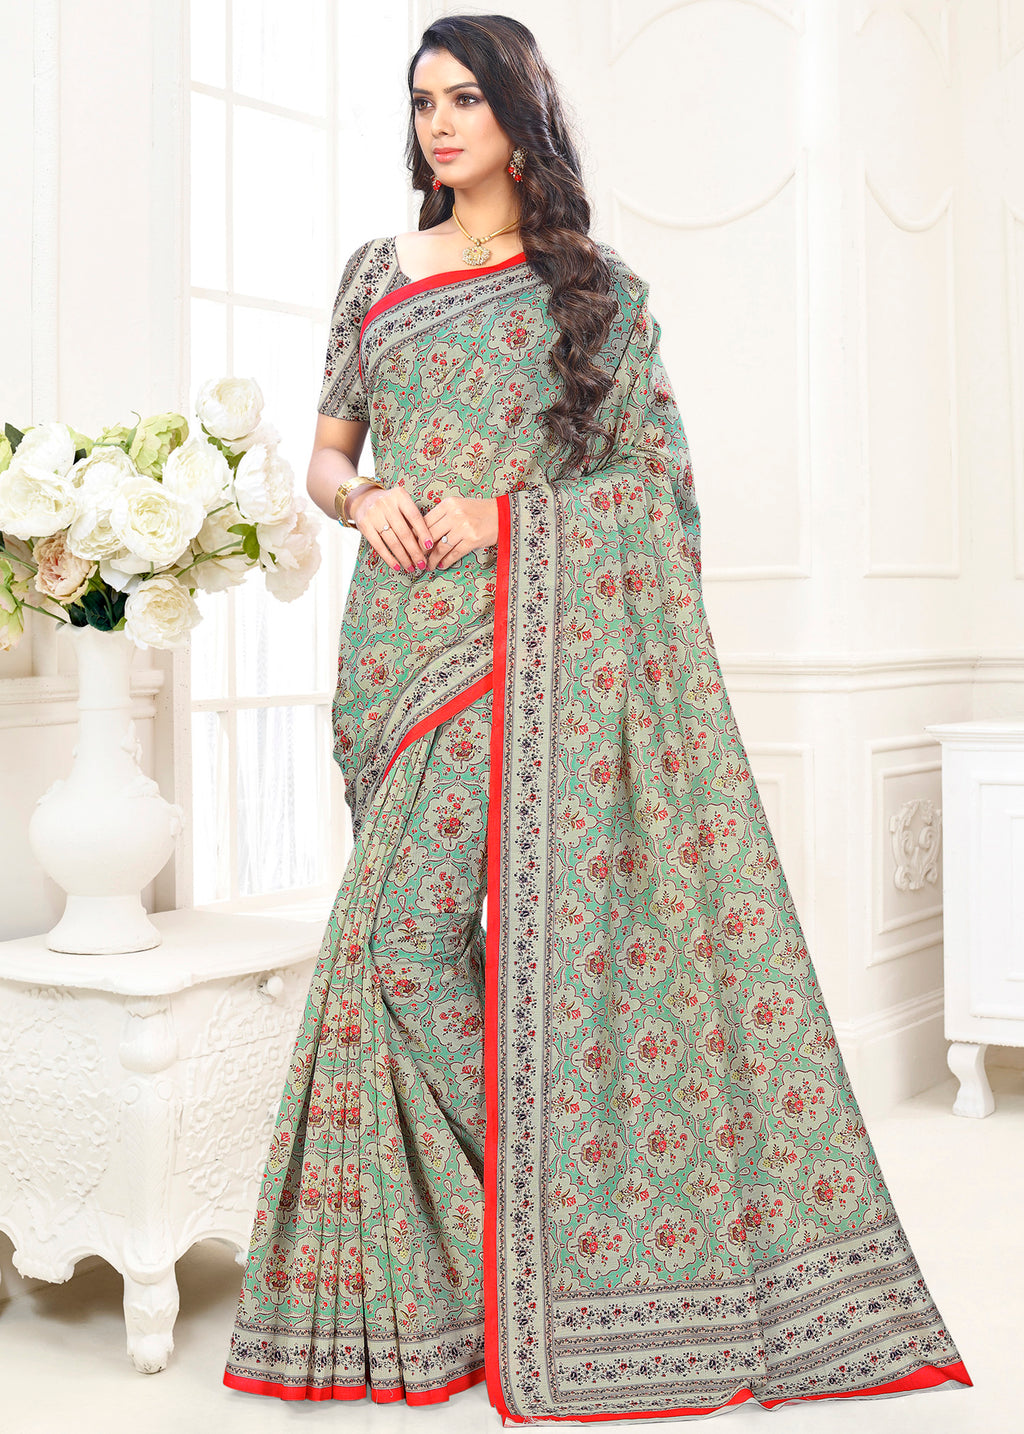 Aqua Green Color Cotton Casual Party Sarees NYF-9425